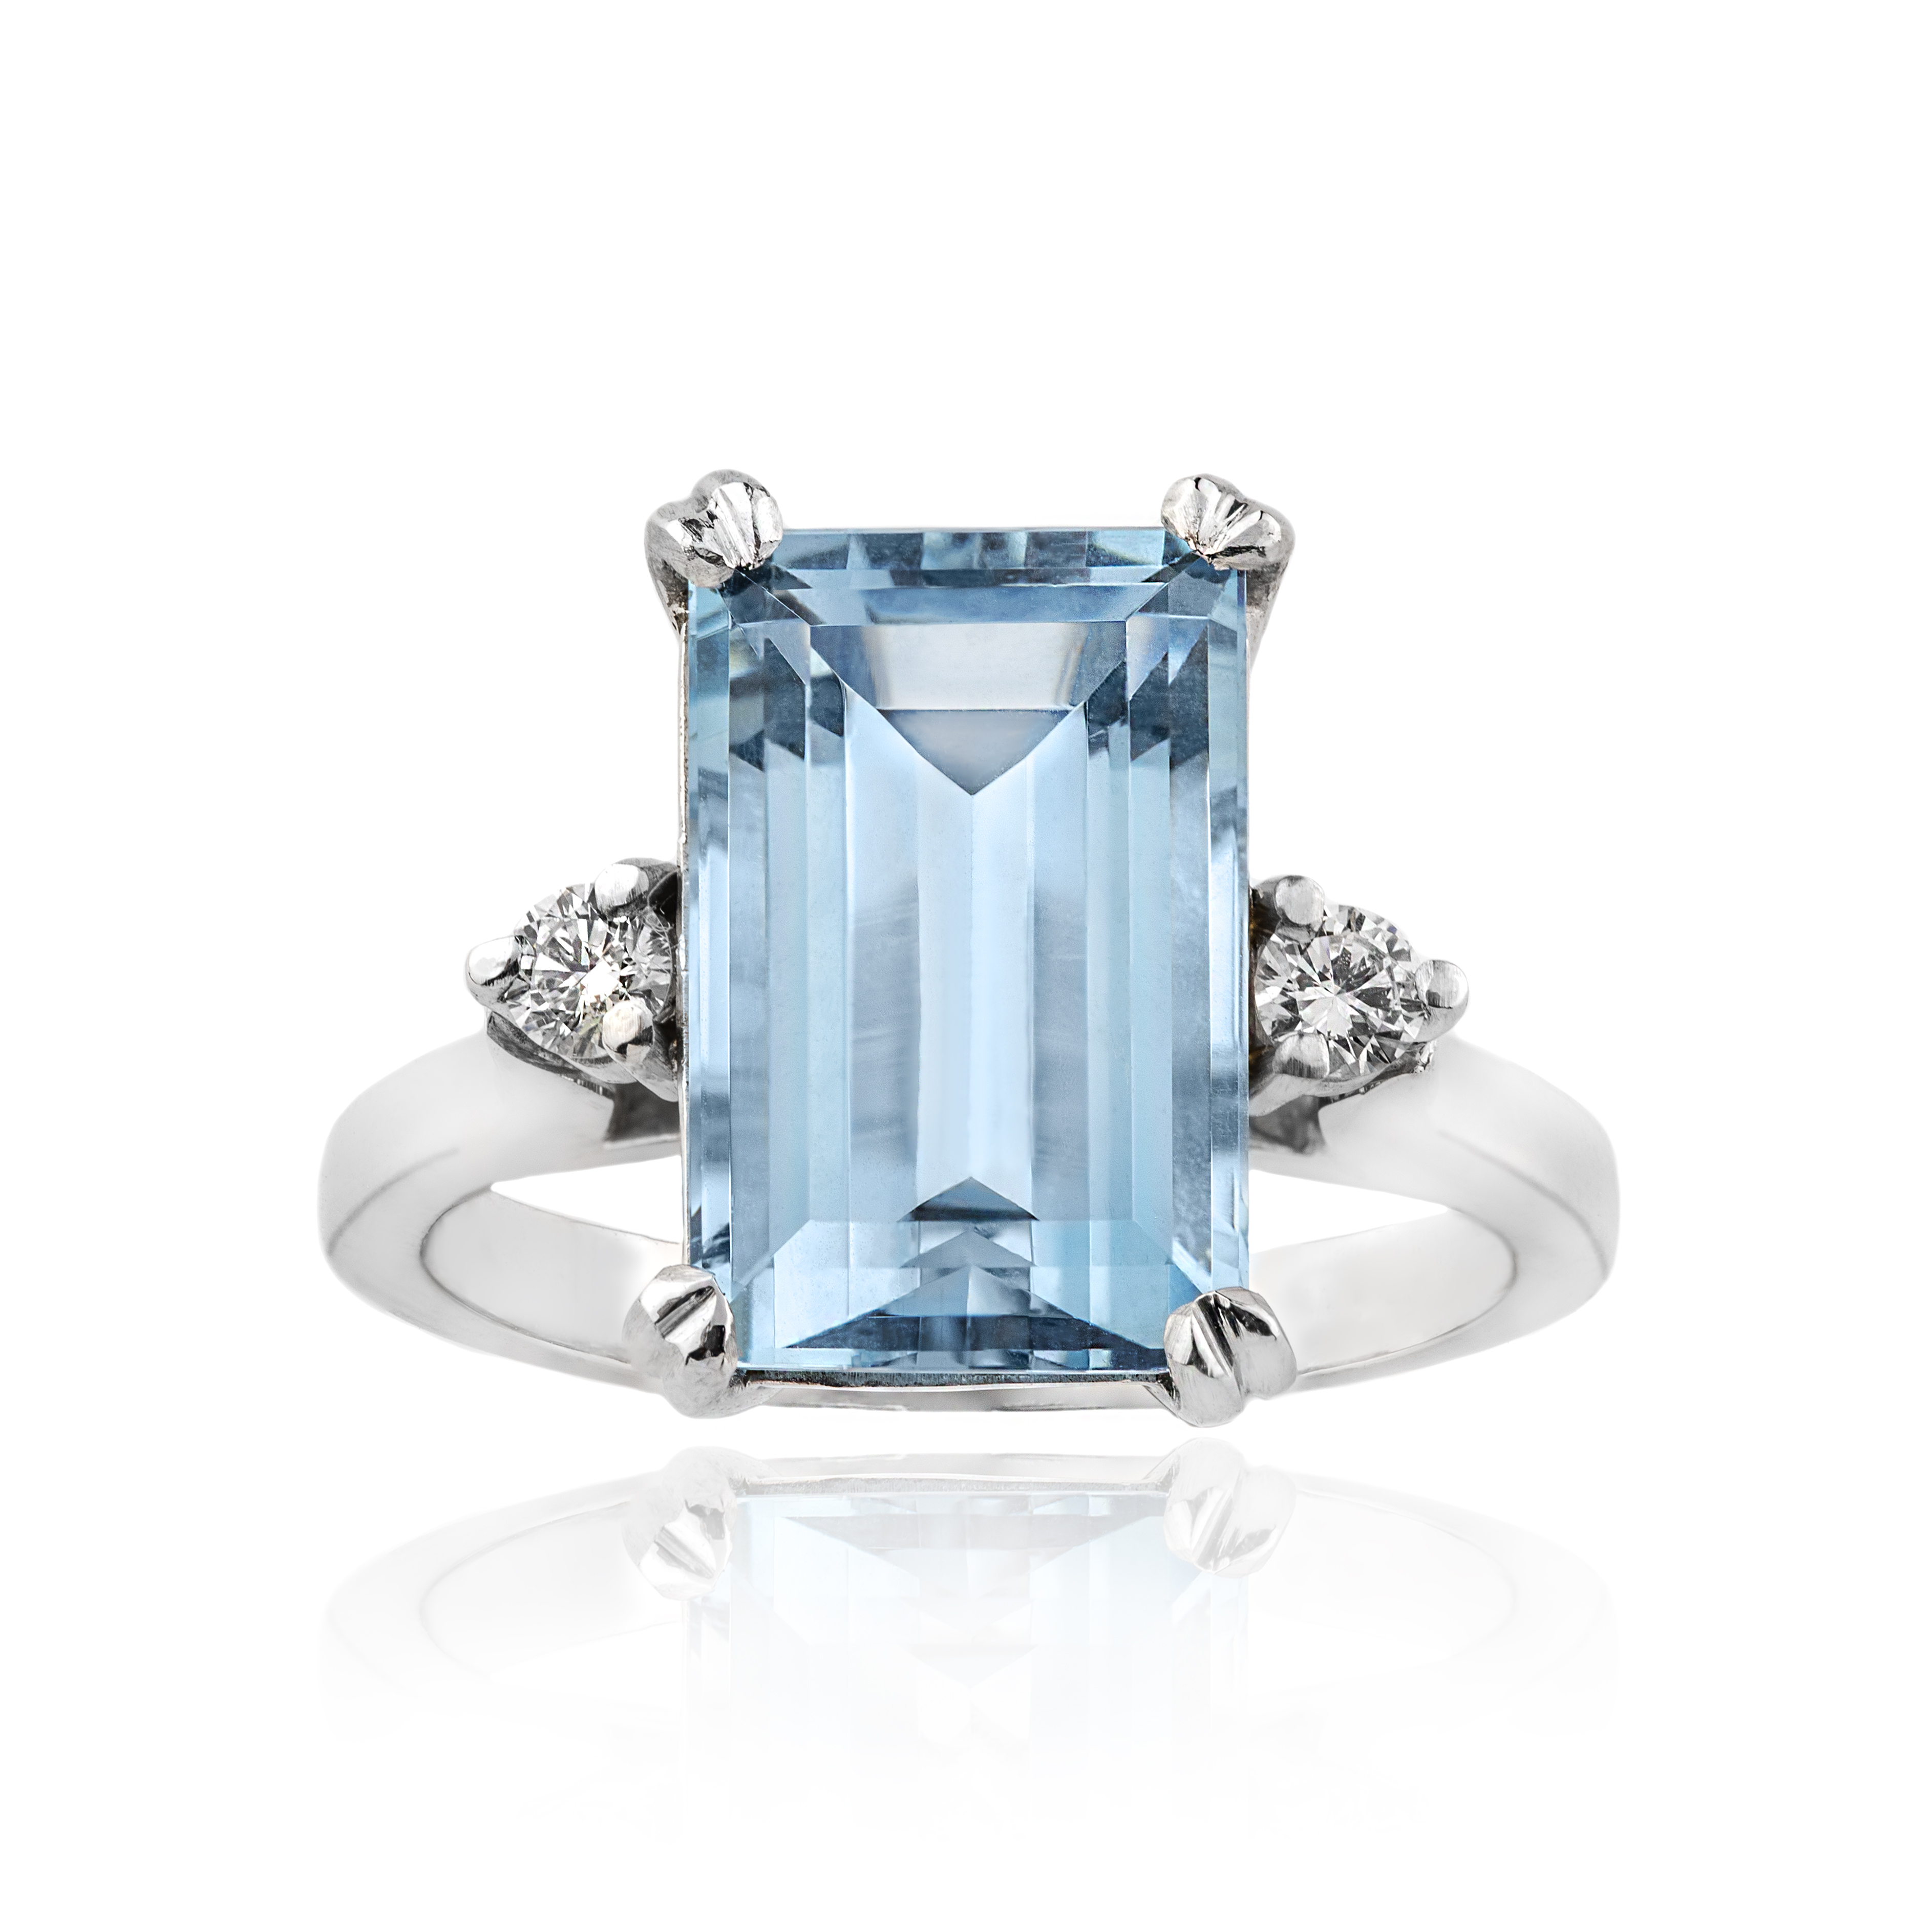 c643efb12c42a 18ct White Gold Aquamarine and Diamond Three Stone Ring, A 4.82ct, D 0.14ct  GH Si1